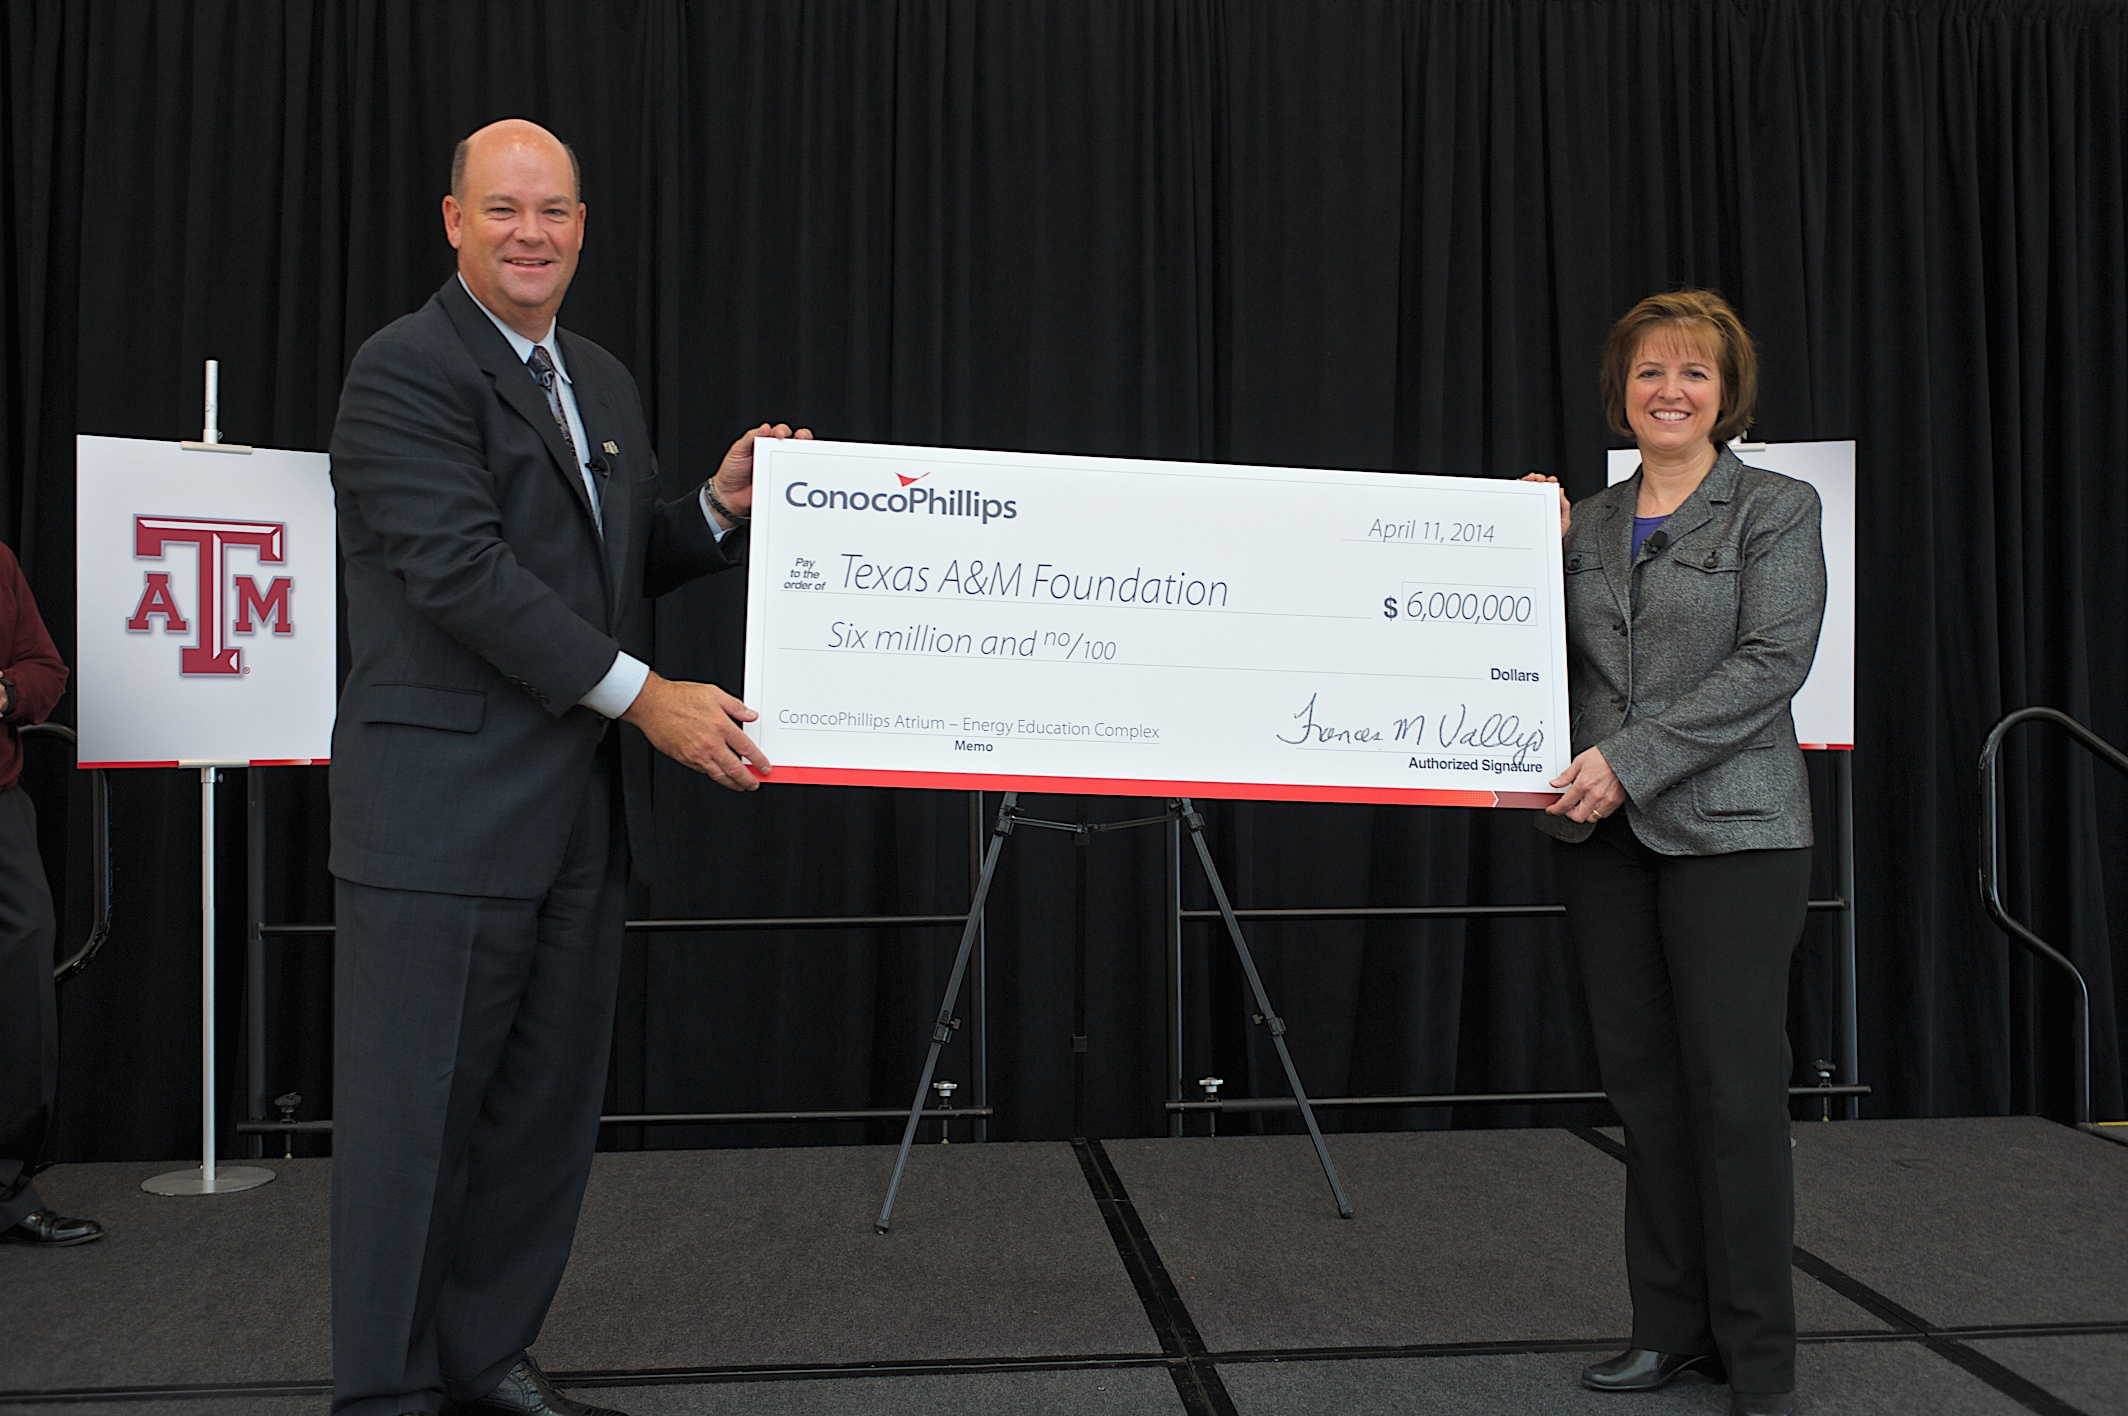 ConocoPhillips Chairman and Chief Executive Officer Ryan Lance presents a $6 million check to Dr. M. Katherine Banks, vice chancellor and dean of engineering at Texas A&M University. The check will support construction of the new Engineering Education Complex. (Photo: Business Wire)